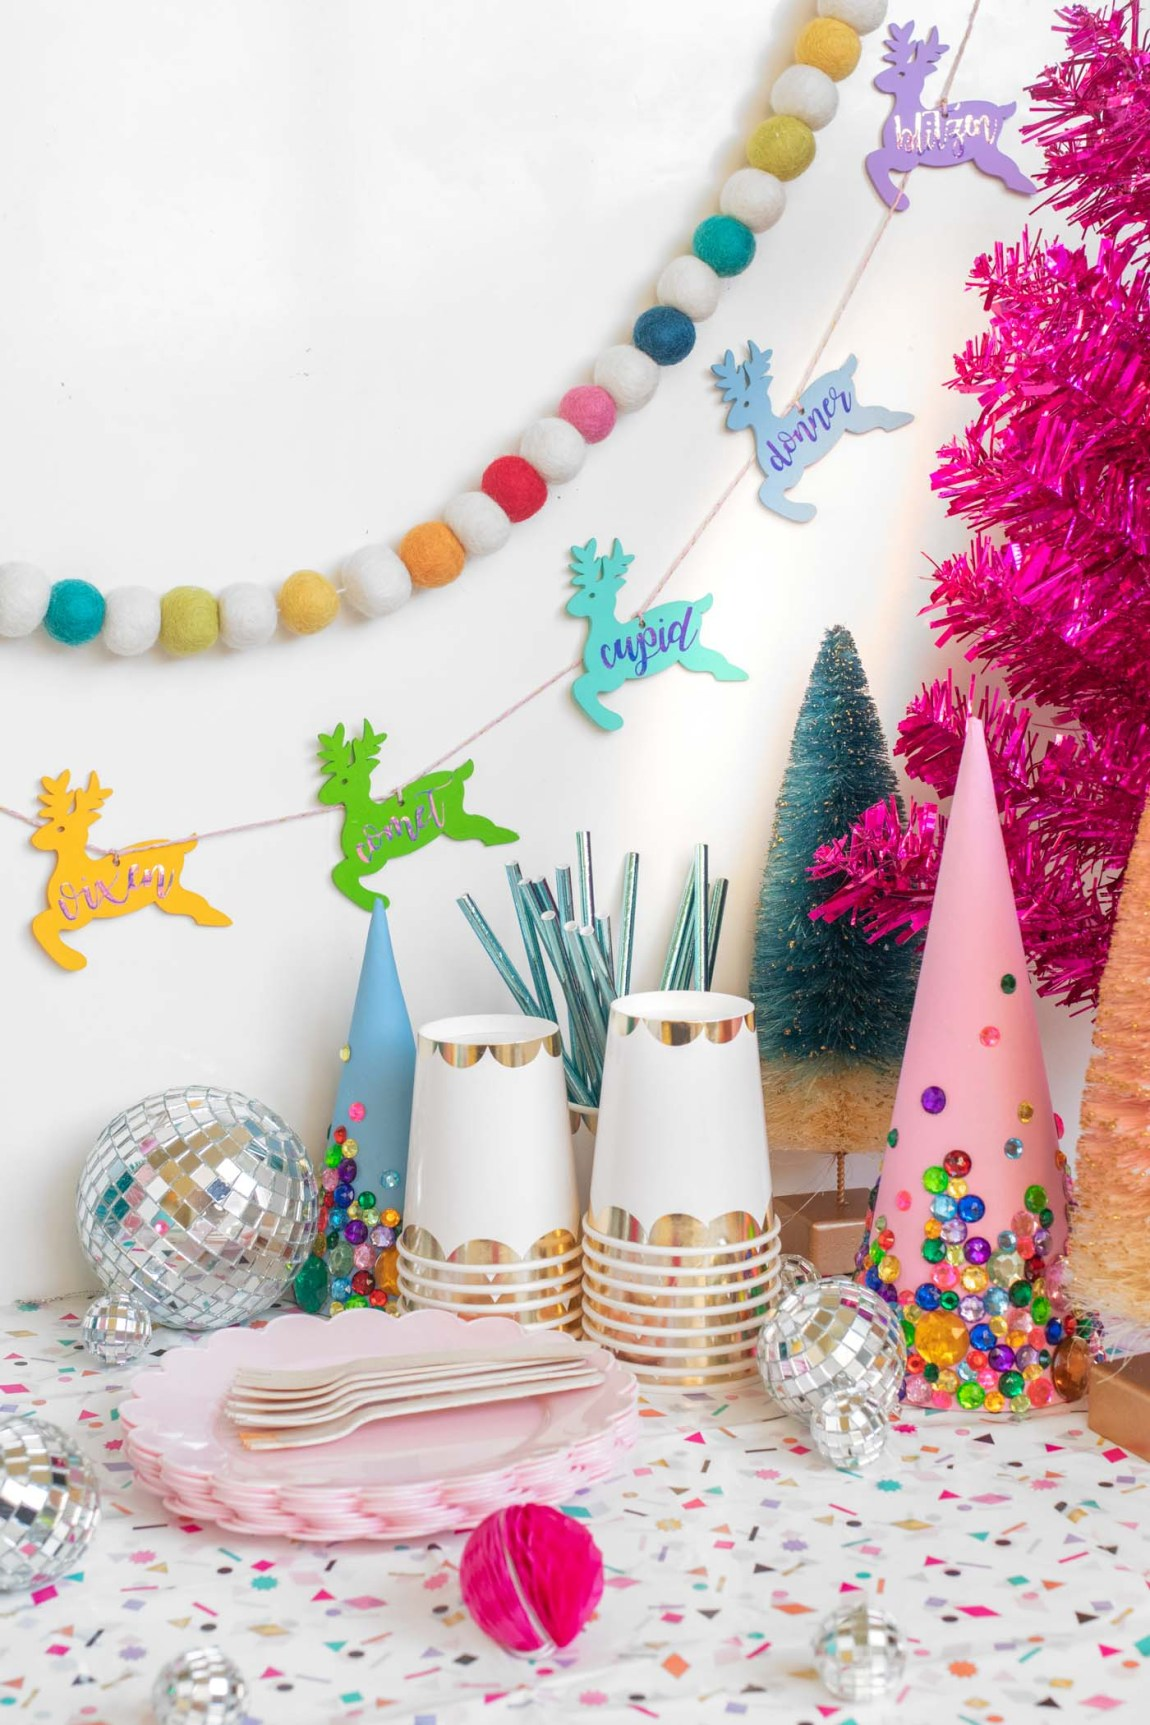 DIY Rainbow Reindeer Garland for Christmas // Paint wooden reindeer ornaments and add holographic vinyl to make a colorful Christmas garland with the names of Santa's reindeer! #christmasdecor #christmas #christmasdiy #rainbowdiy #reindeer #vinyl #cricut #painting